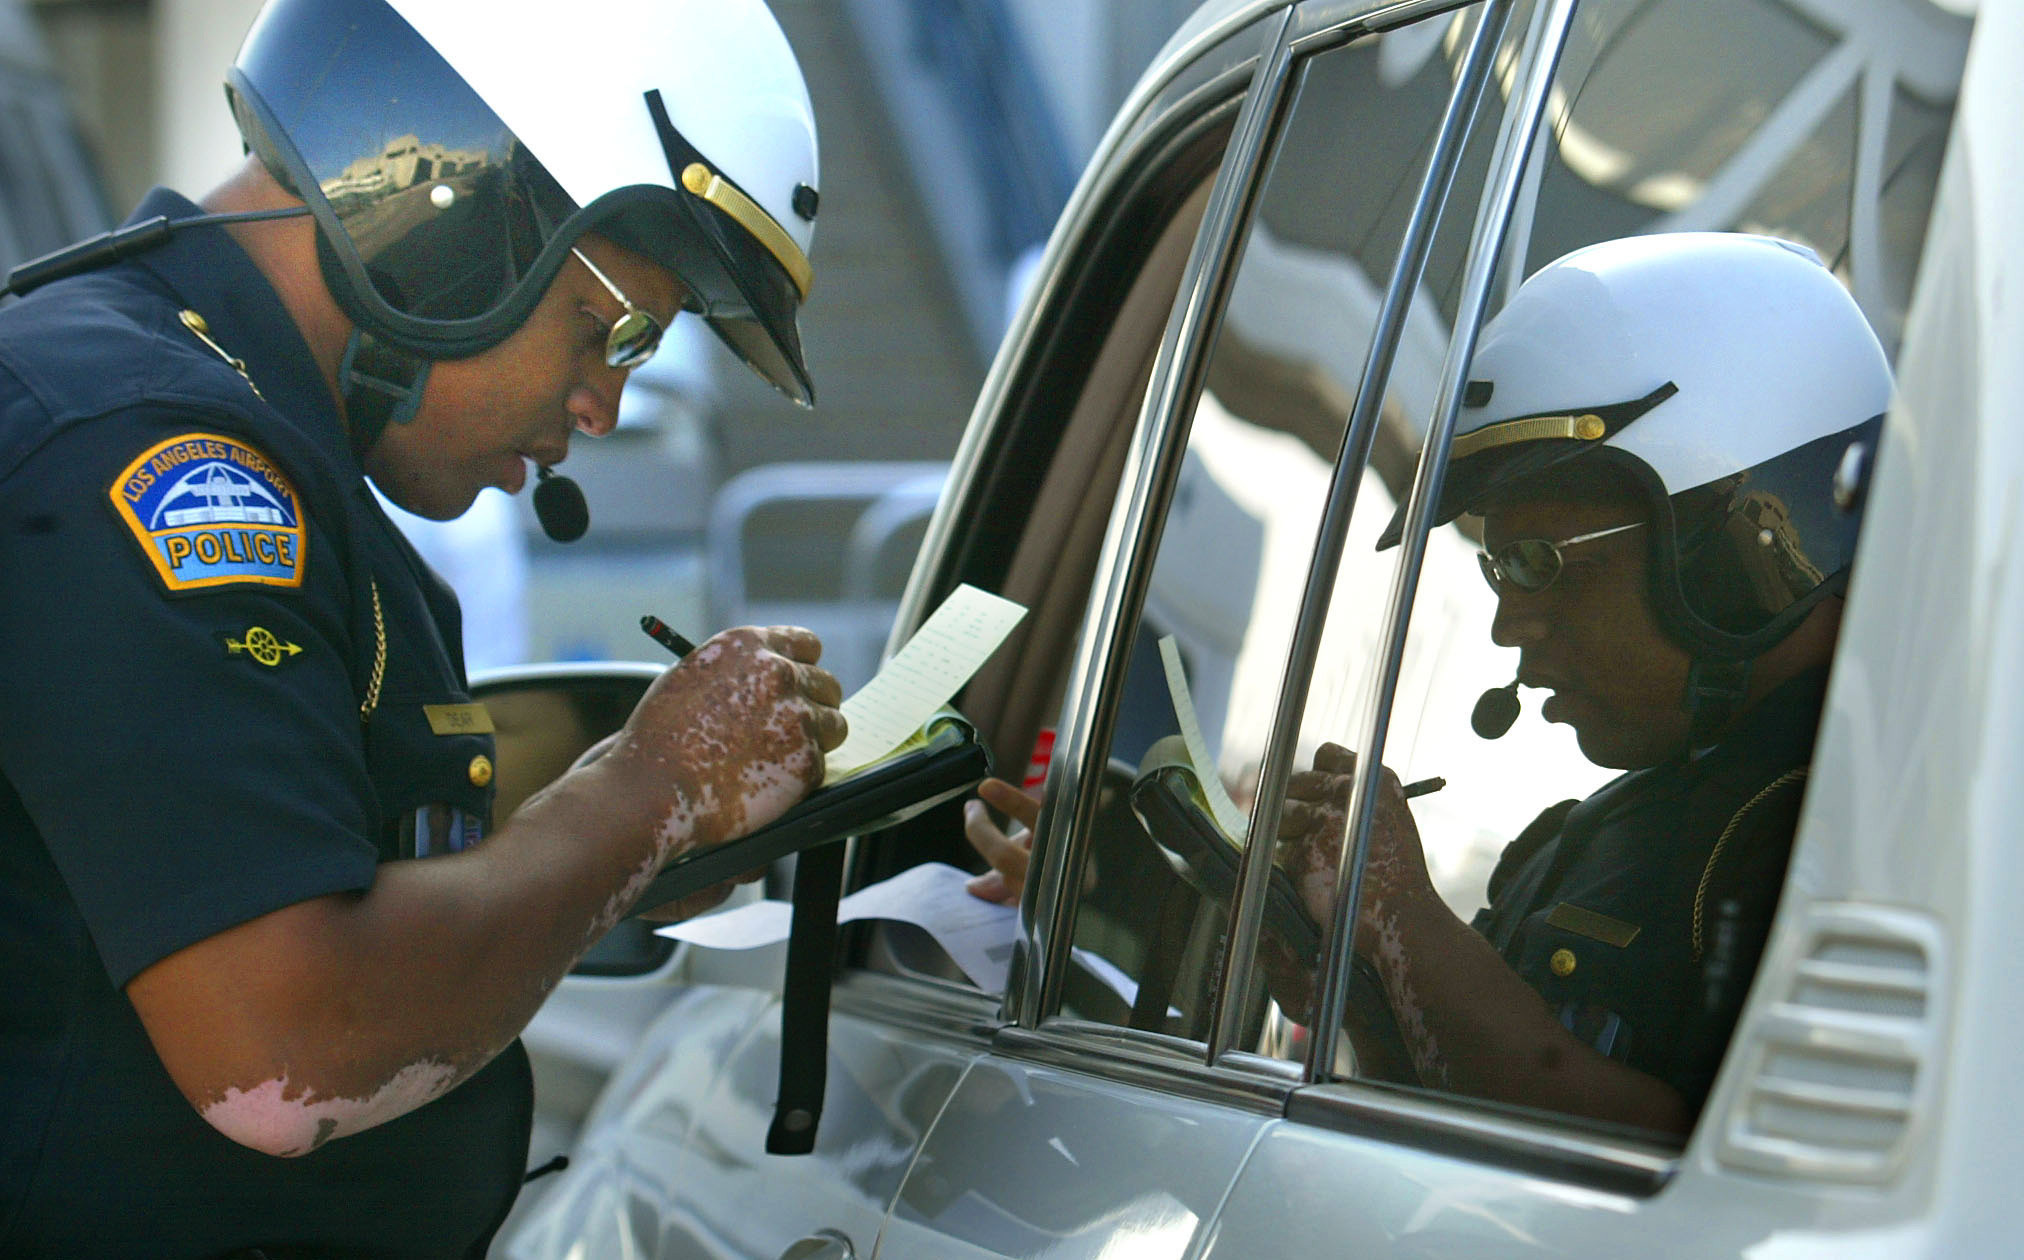 Do you want to be the person that is not able to pay a car ticket?